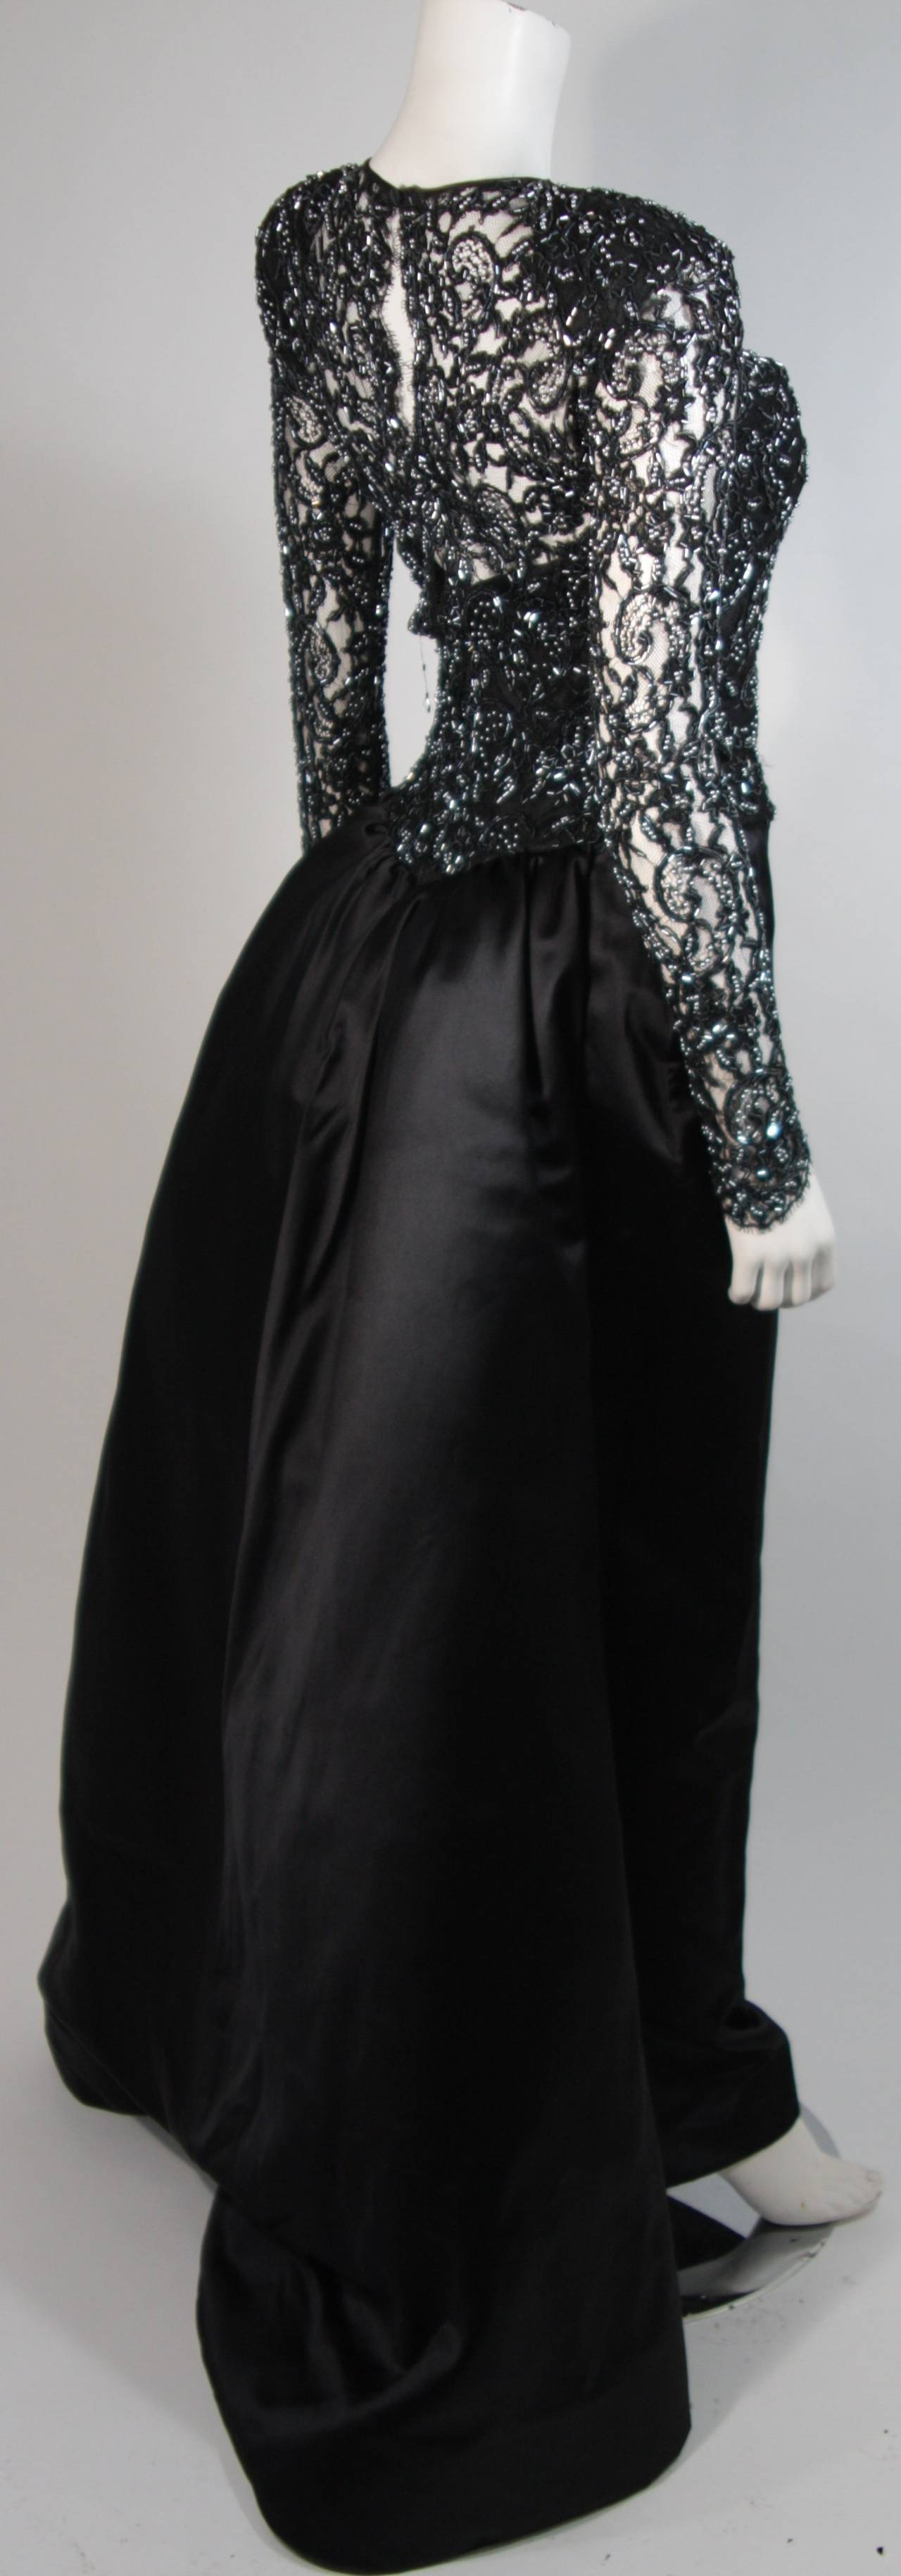 Vicky Tiel Black Embellished Lace Gown With Silk Skirt Size Small 5